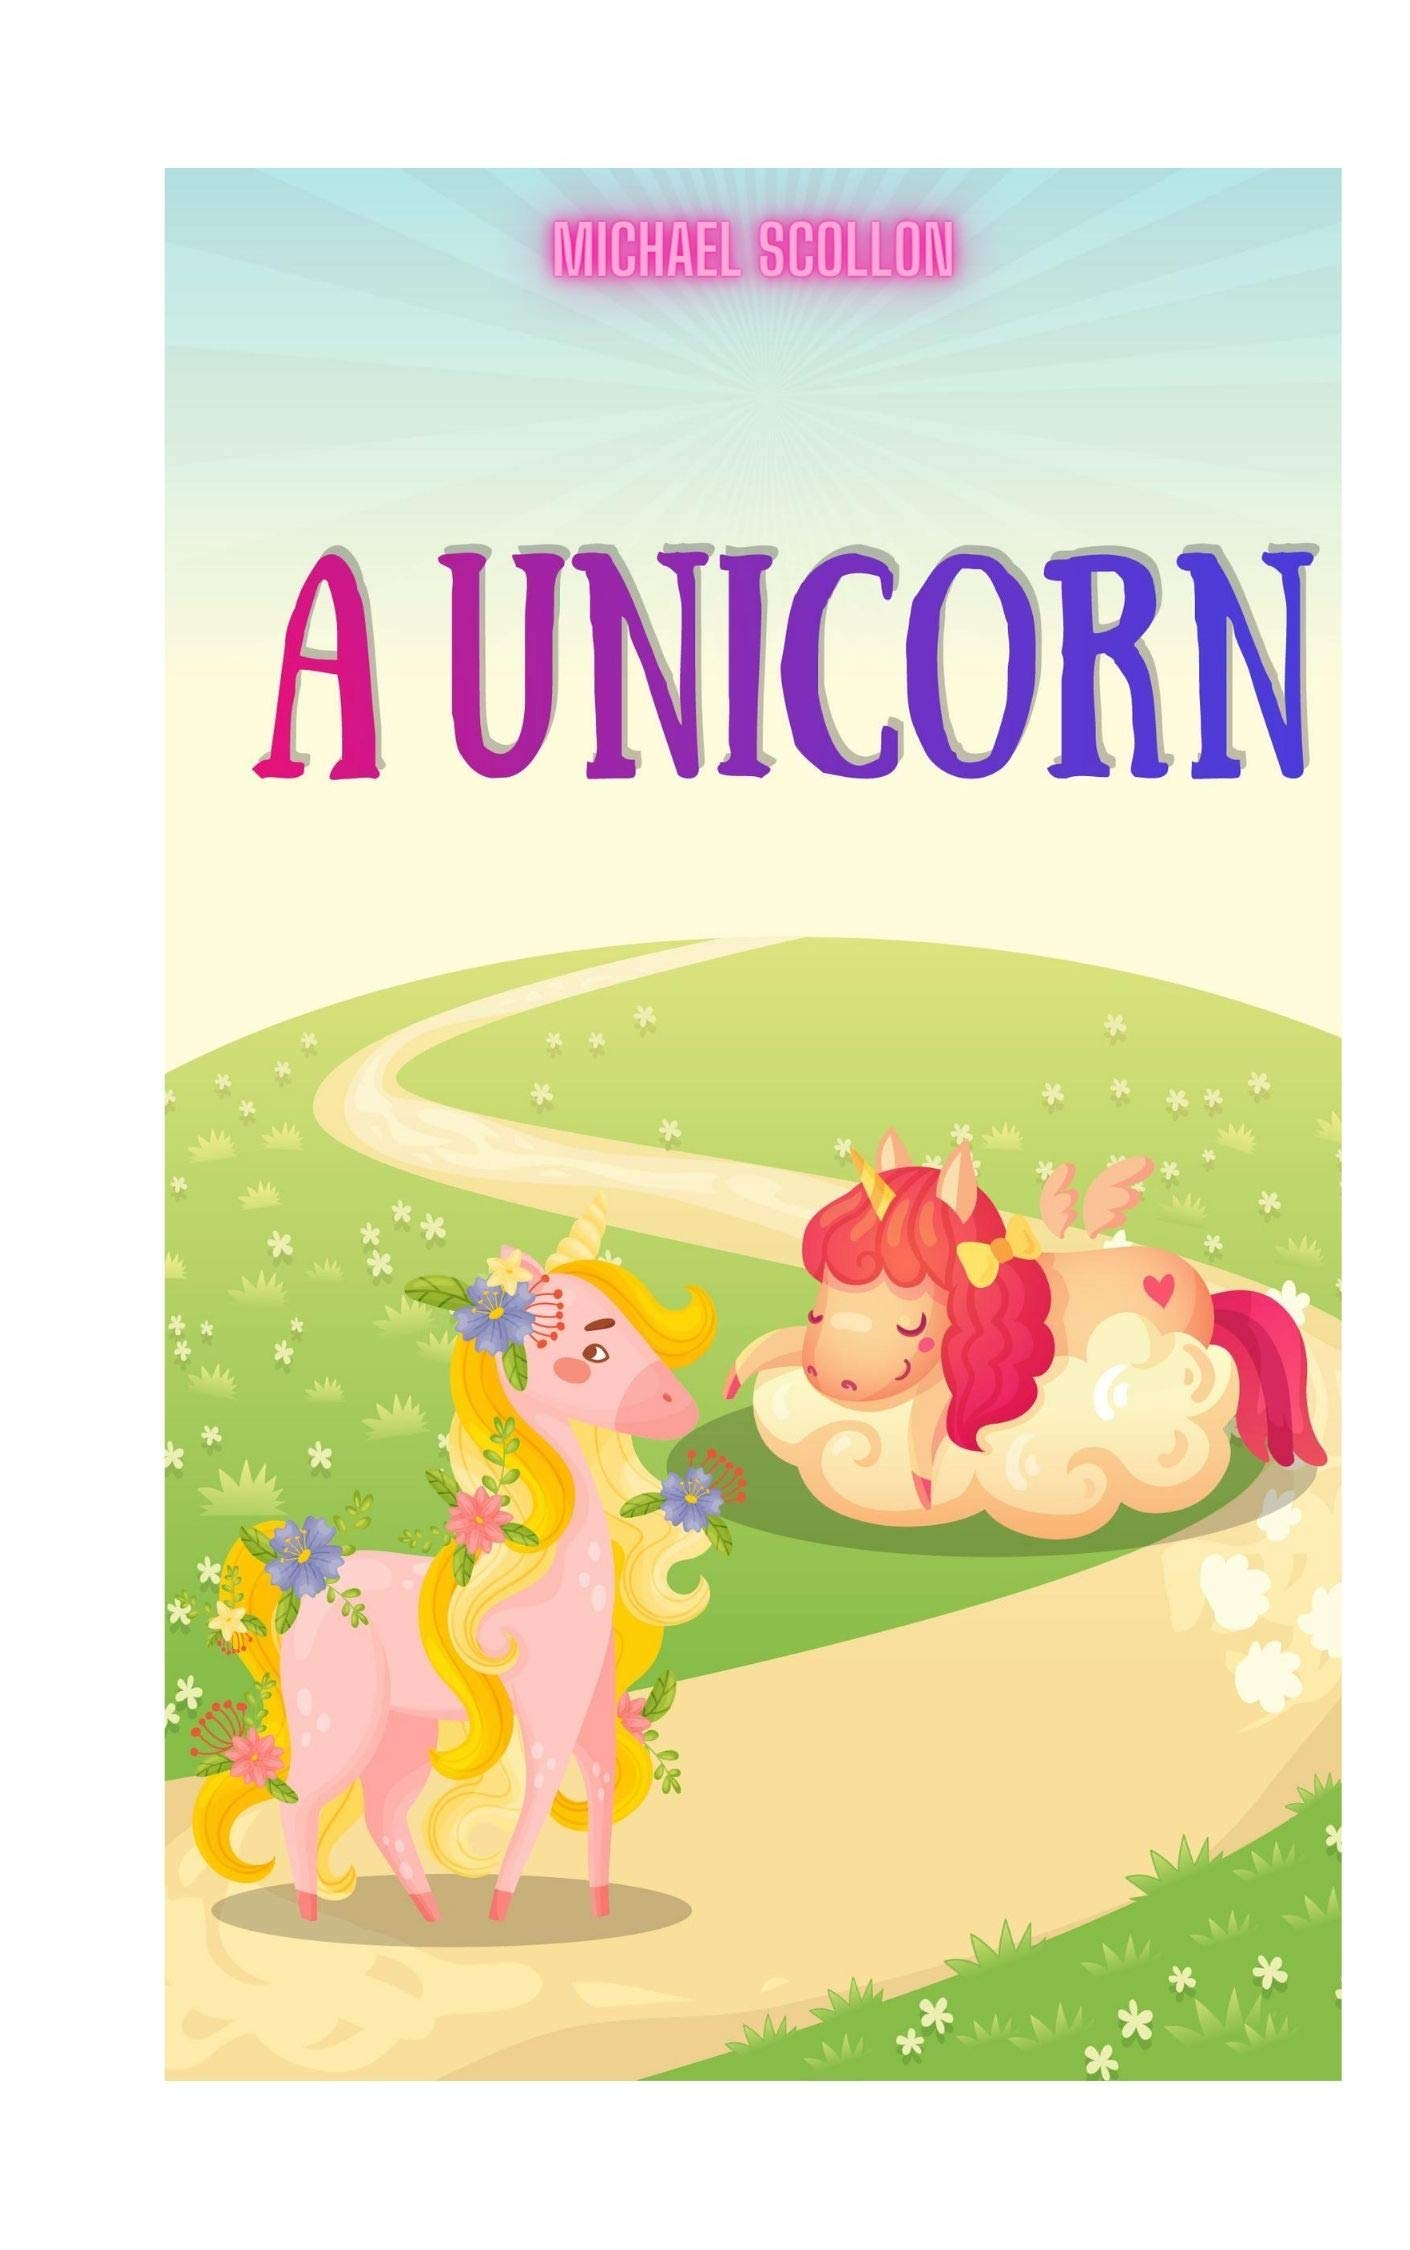 Books for kids: A Unicorn: Free Stories For Kids Ages 2-8 (Kids Books, Children's Books - Free Stories)